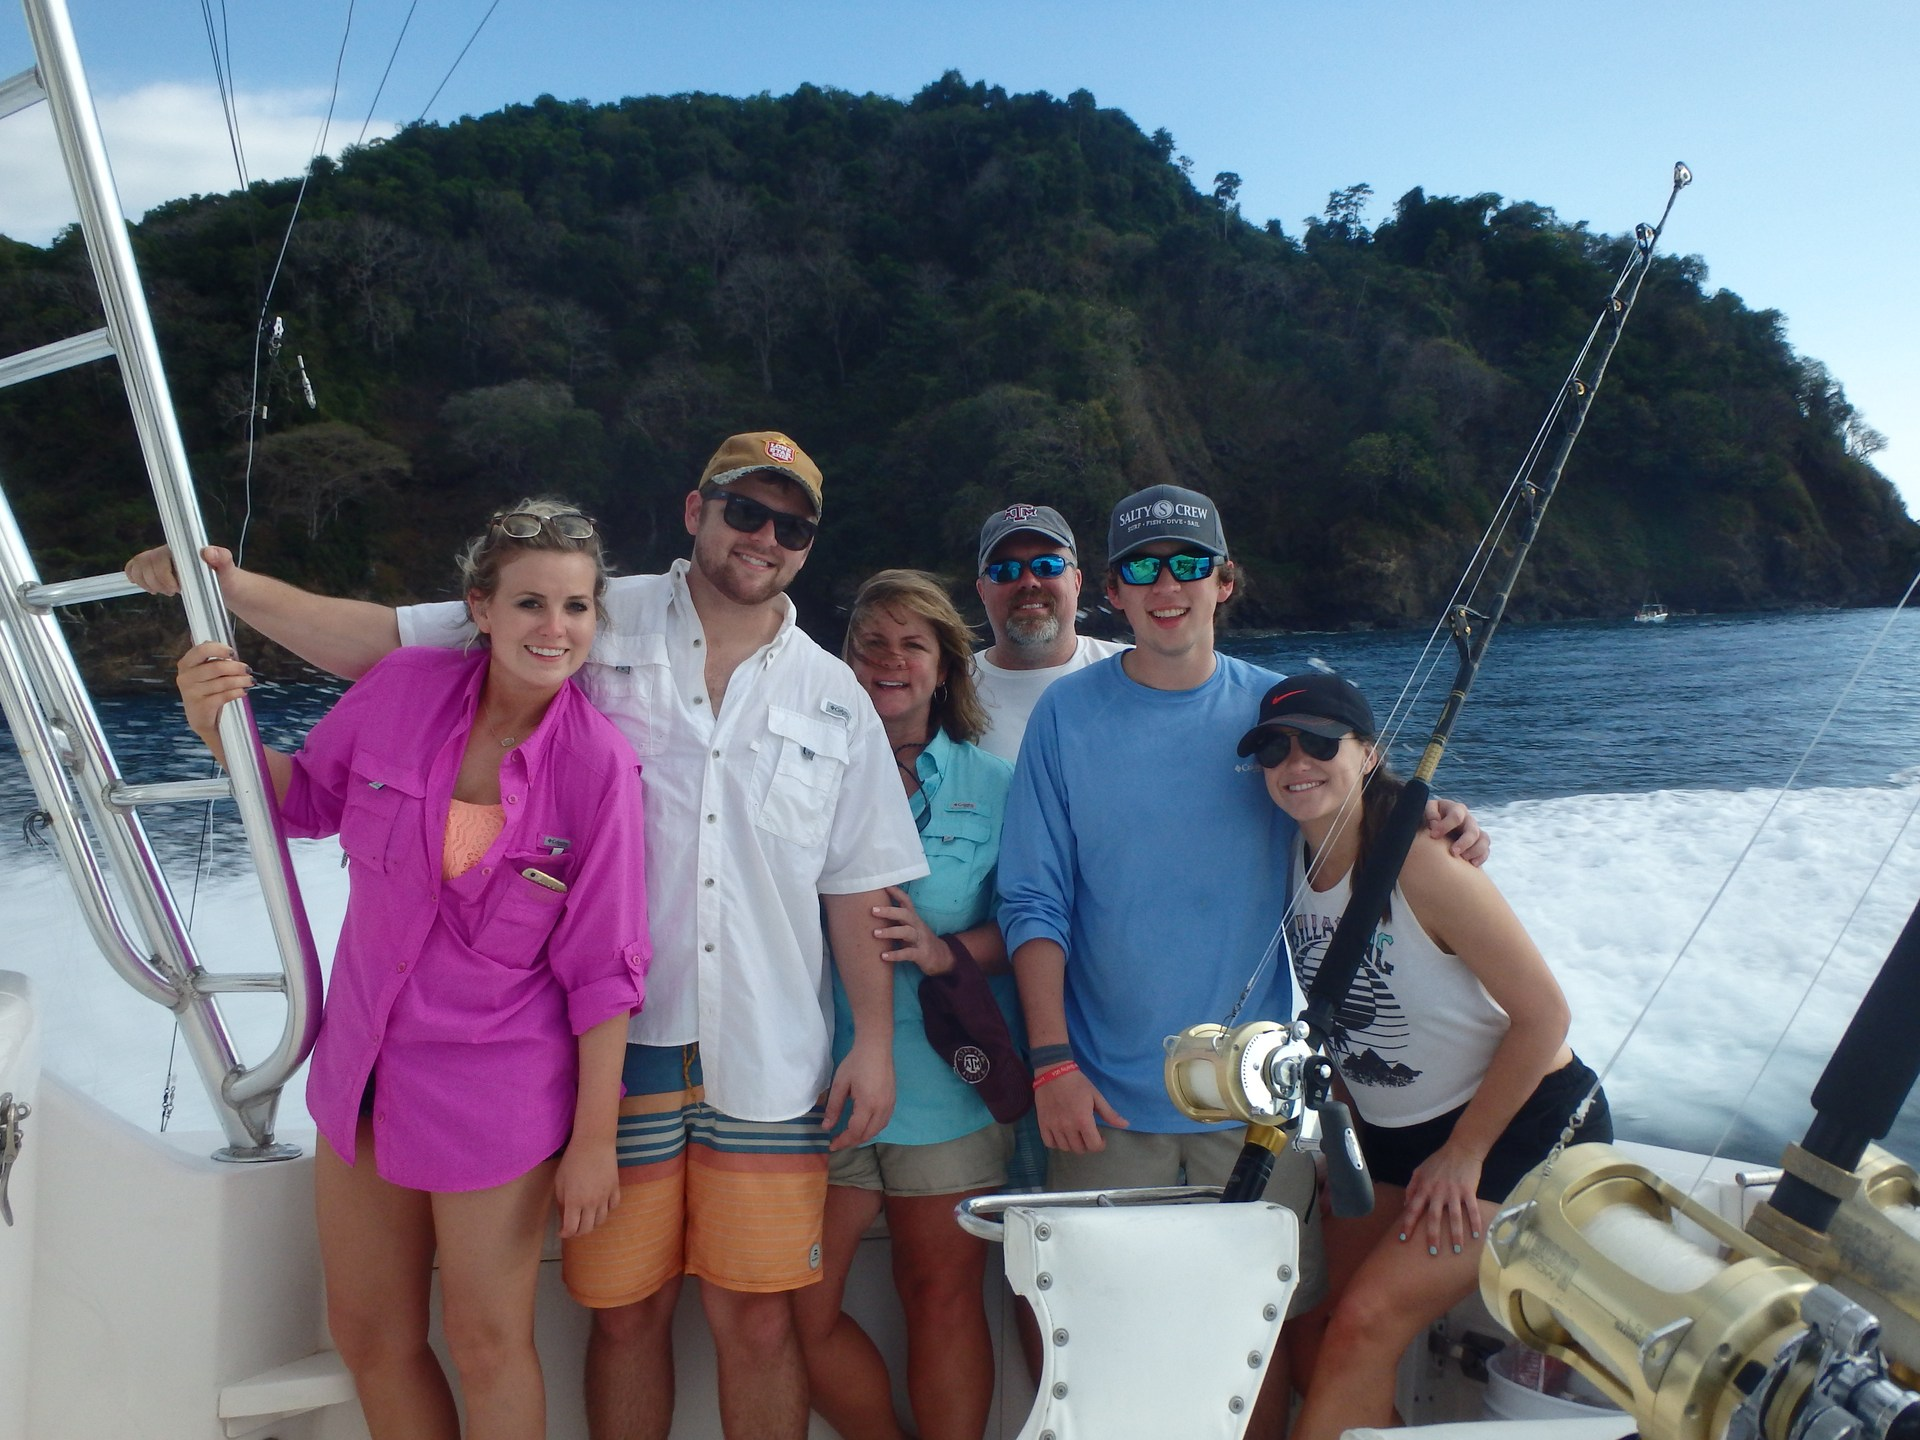 My family after a fishing trip in Costa Rica. Allie, Cody, me, Rob, Jared, and my niece, Lindsay.